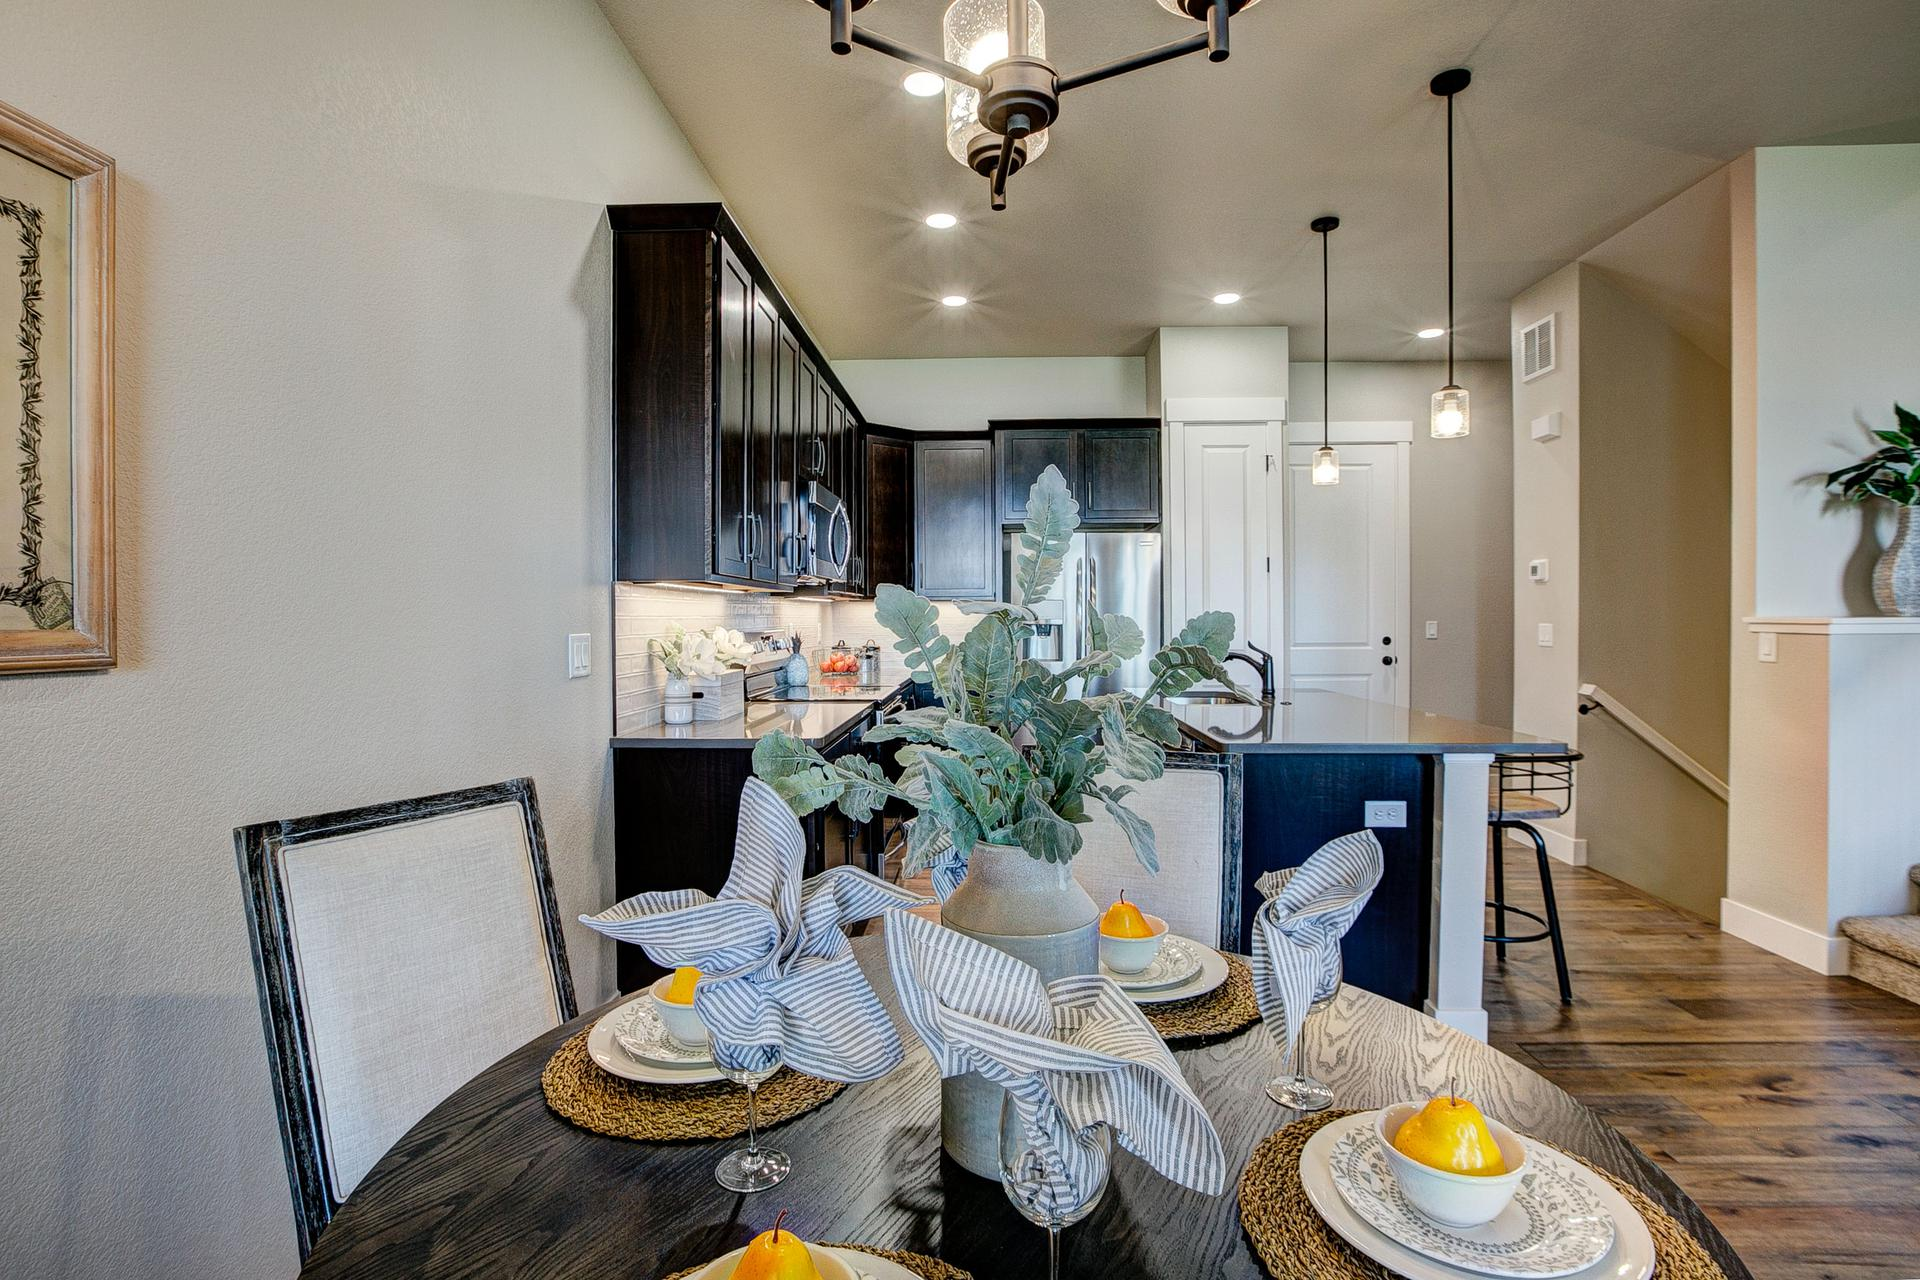 Dining Room - Not Actual Home - Finishes Will Vary